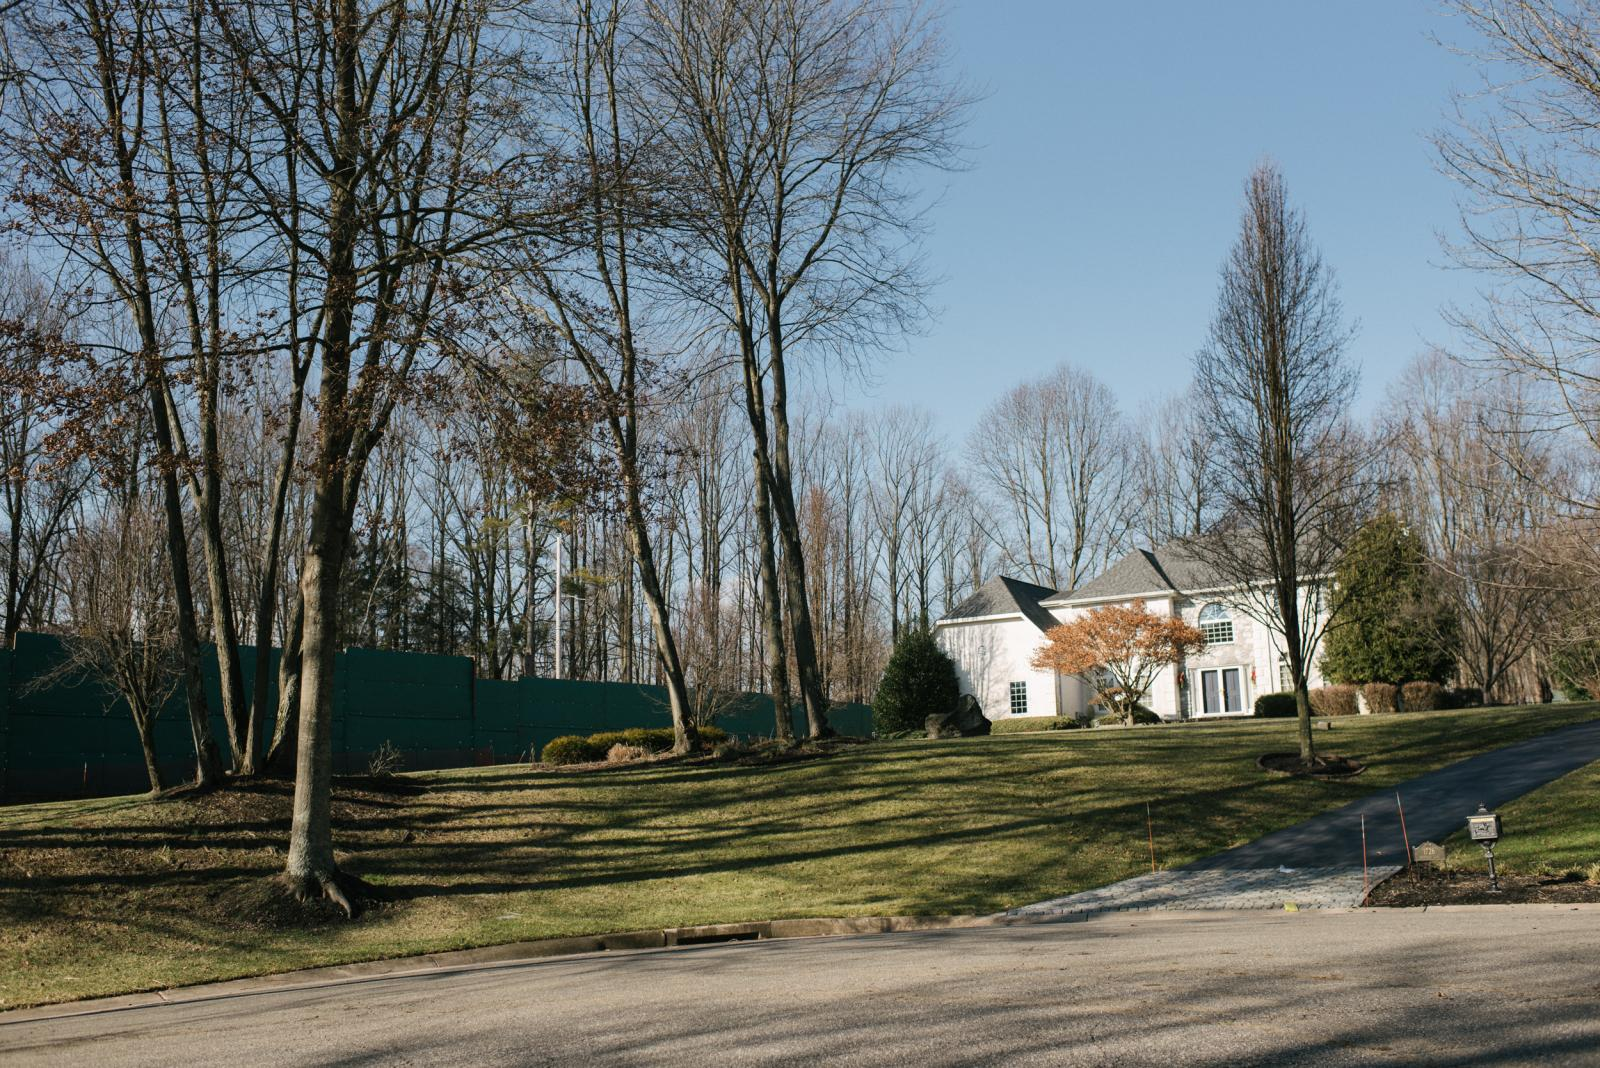 A residential home can be seen next to a Mariner East Pipeline construction barricade in Glen Mills, PA. on Thursday, January 16, 2020. Residents living nearby believe the construction work from the pipeline is causing people to have contaminated water. Photo by Hannah Yoon